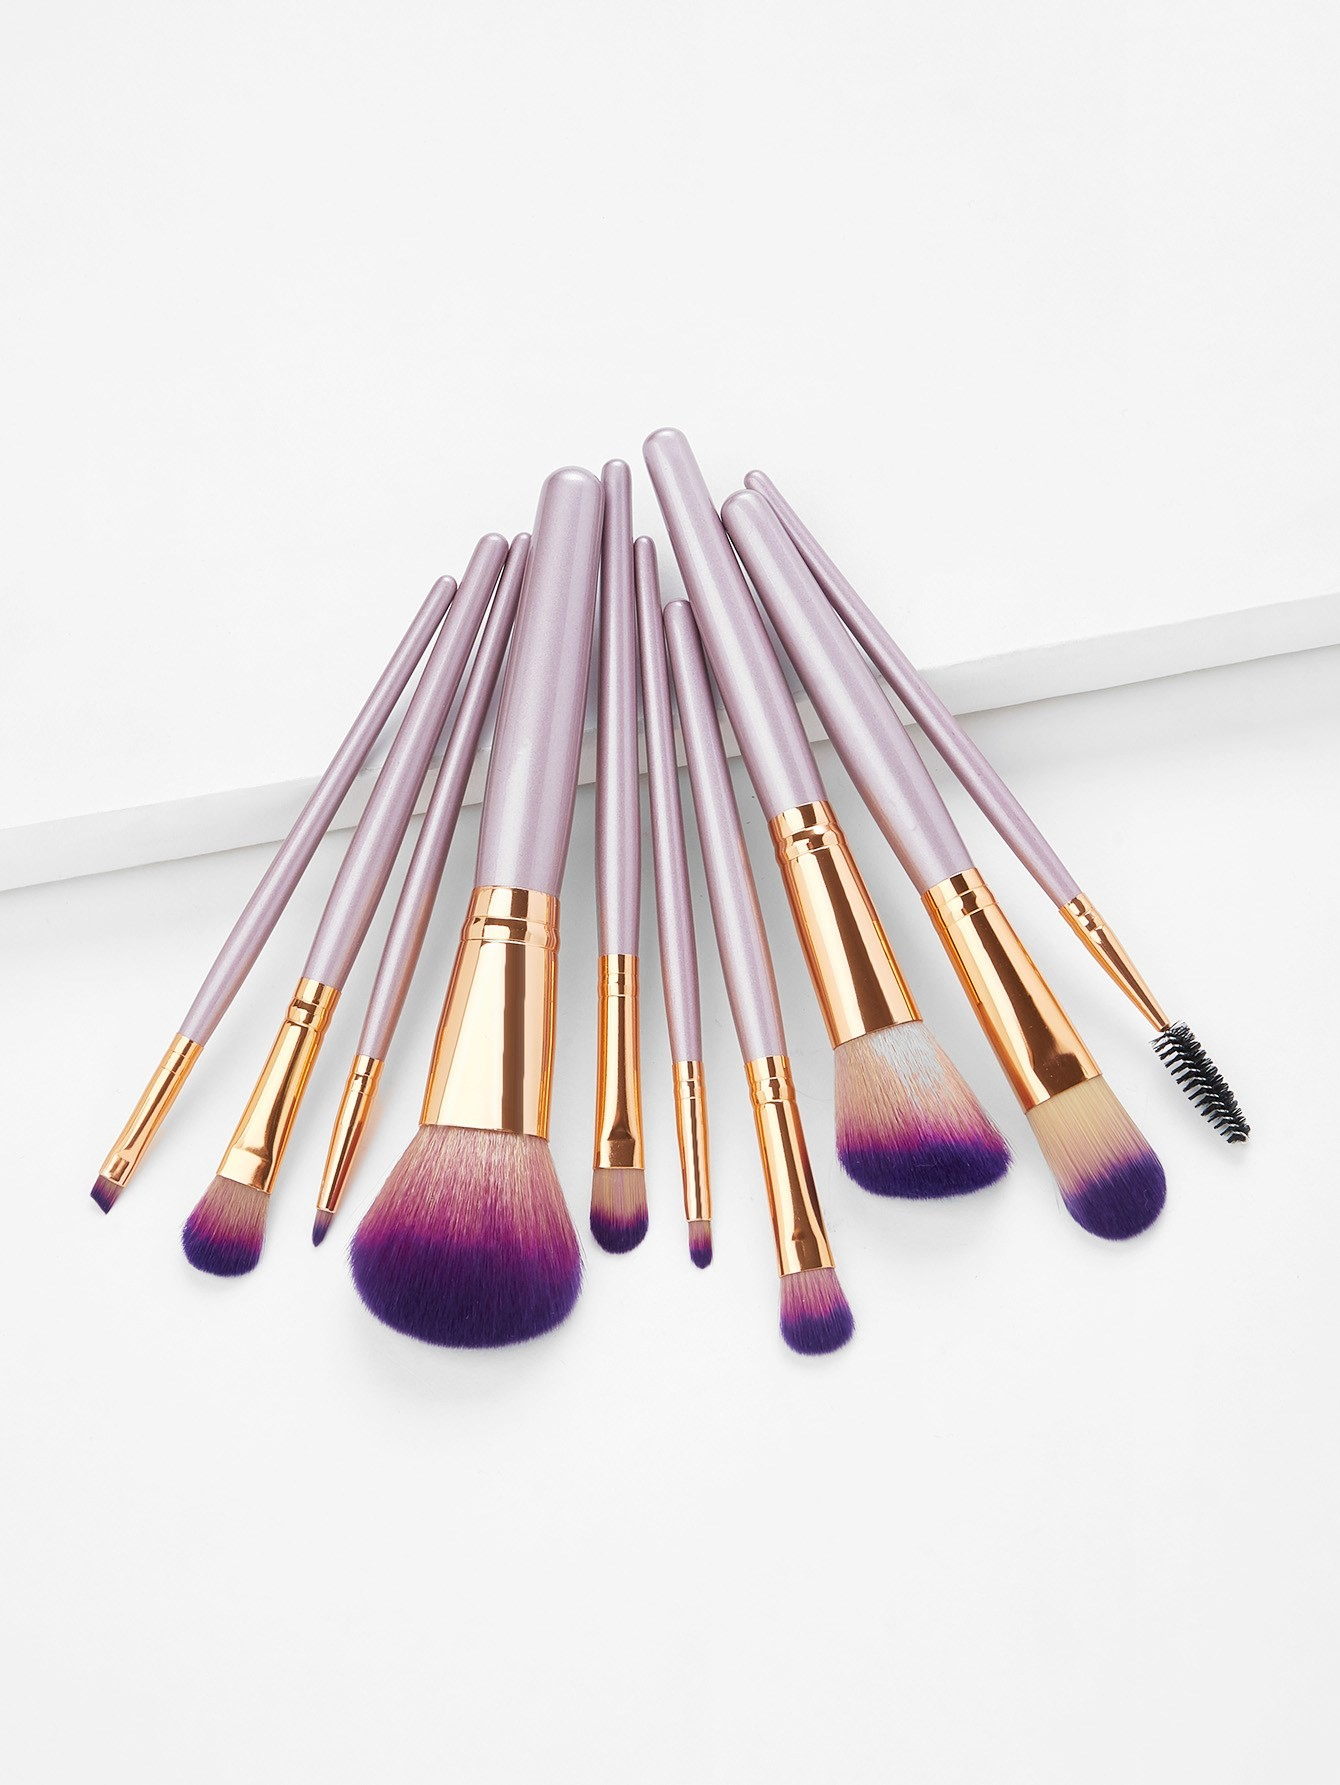 Ombre Bristle Professional Makeup Brush Set 10Pcs understanding collective action